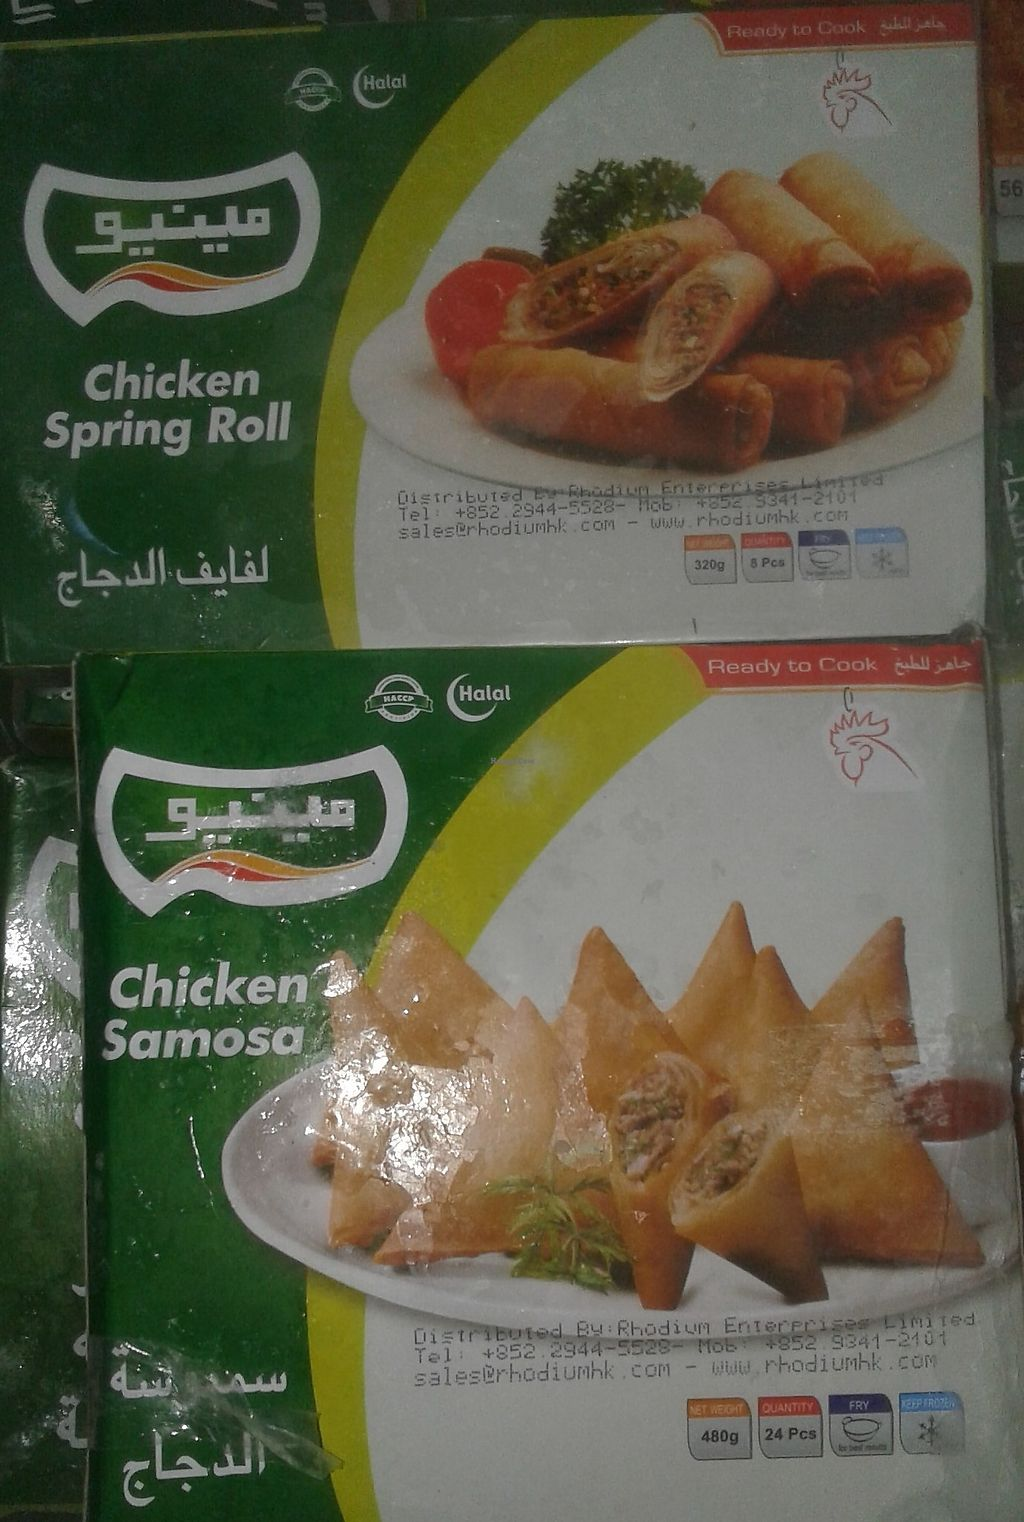 """Photo of Maharaja Provision Store  by <a href=""""/members/profile/Stevie"""">Stevie</a> <br/>Frozen chicken products <br/> July 14, 2017  - <a href='/contact/abuse/image/11089/280087'>Report</a>"""